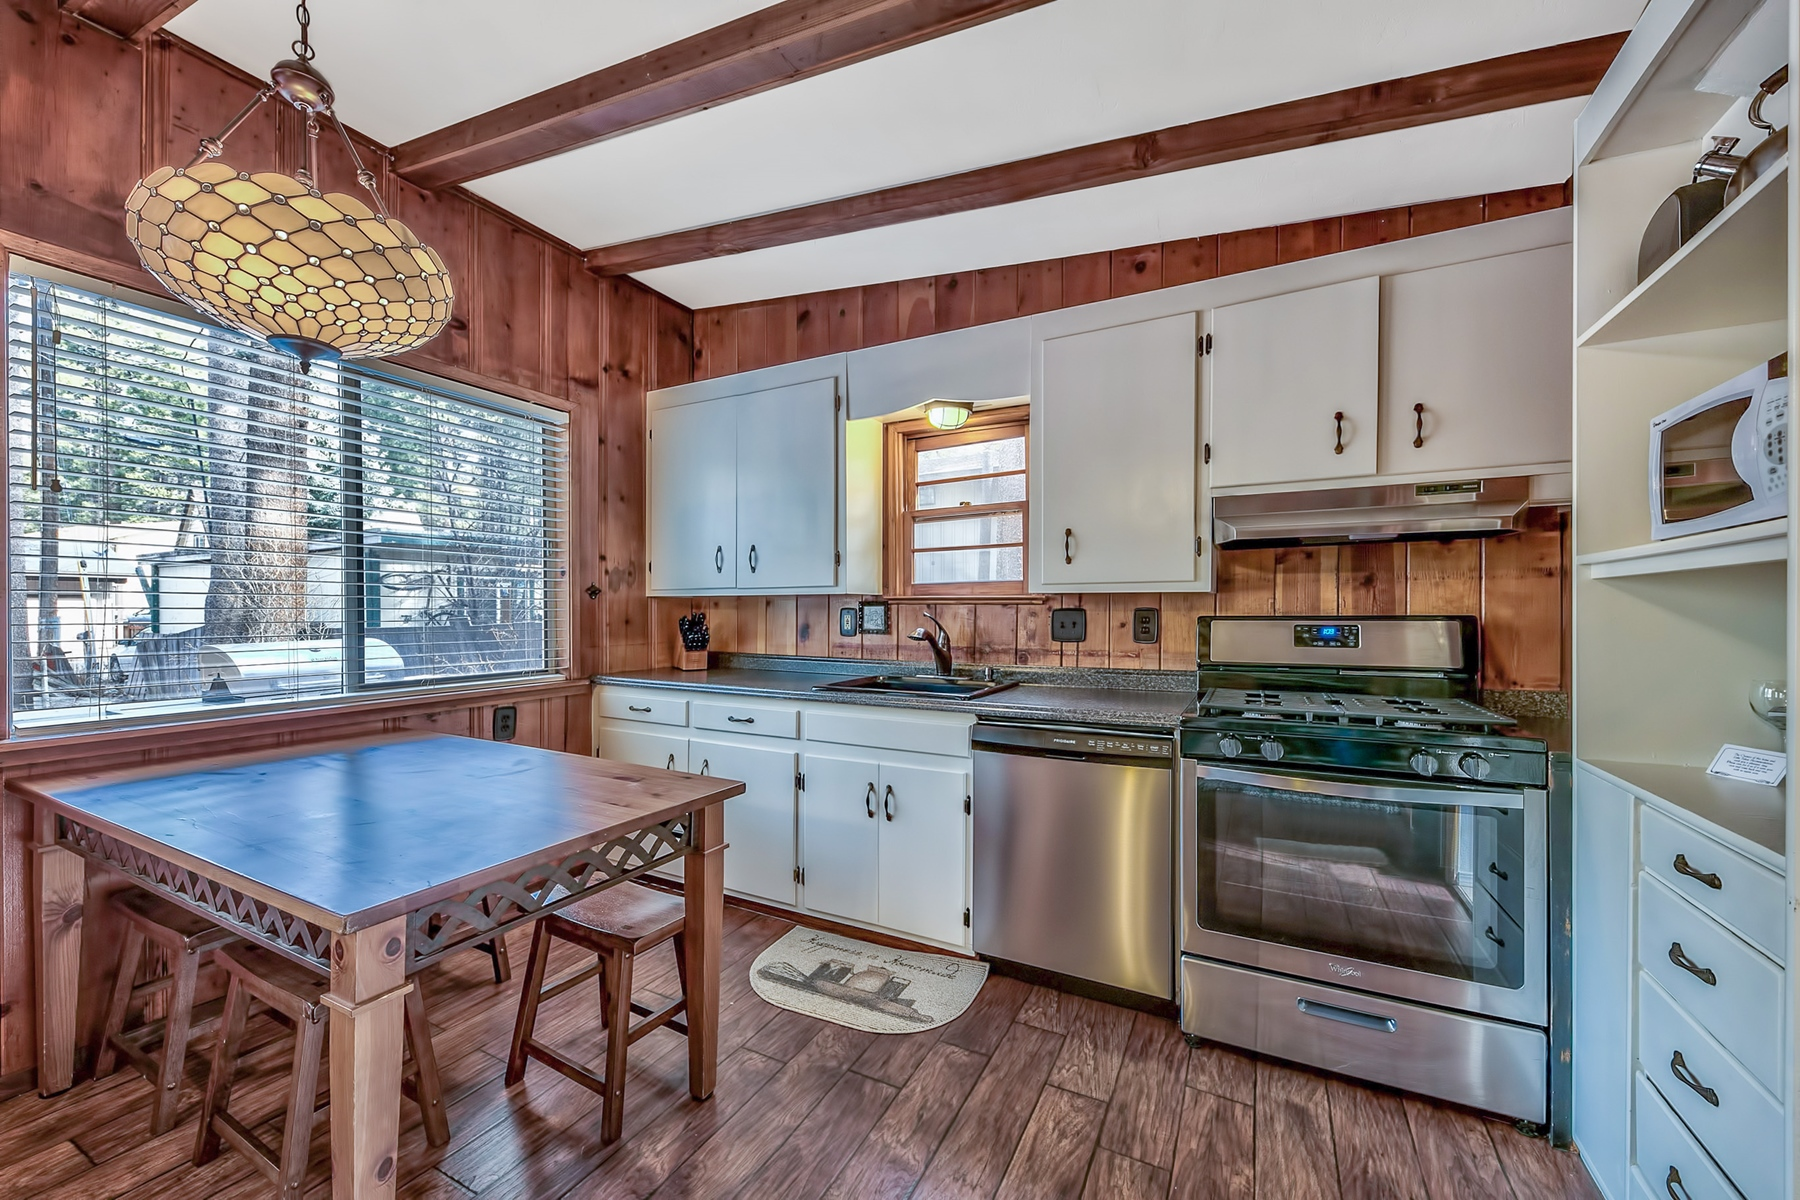 Additional photo for property listing at 1048 Glen Road, South Lake Tahoe, CA 96150 1048 Glen Road South Lake Tahoe, California 96150 United States